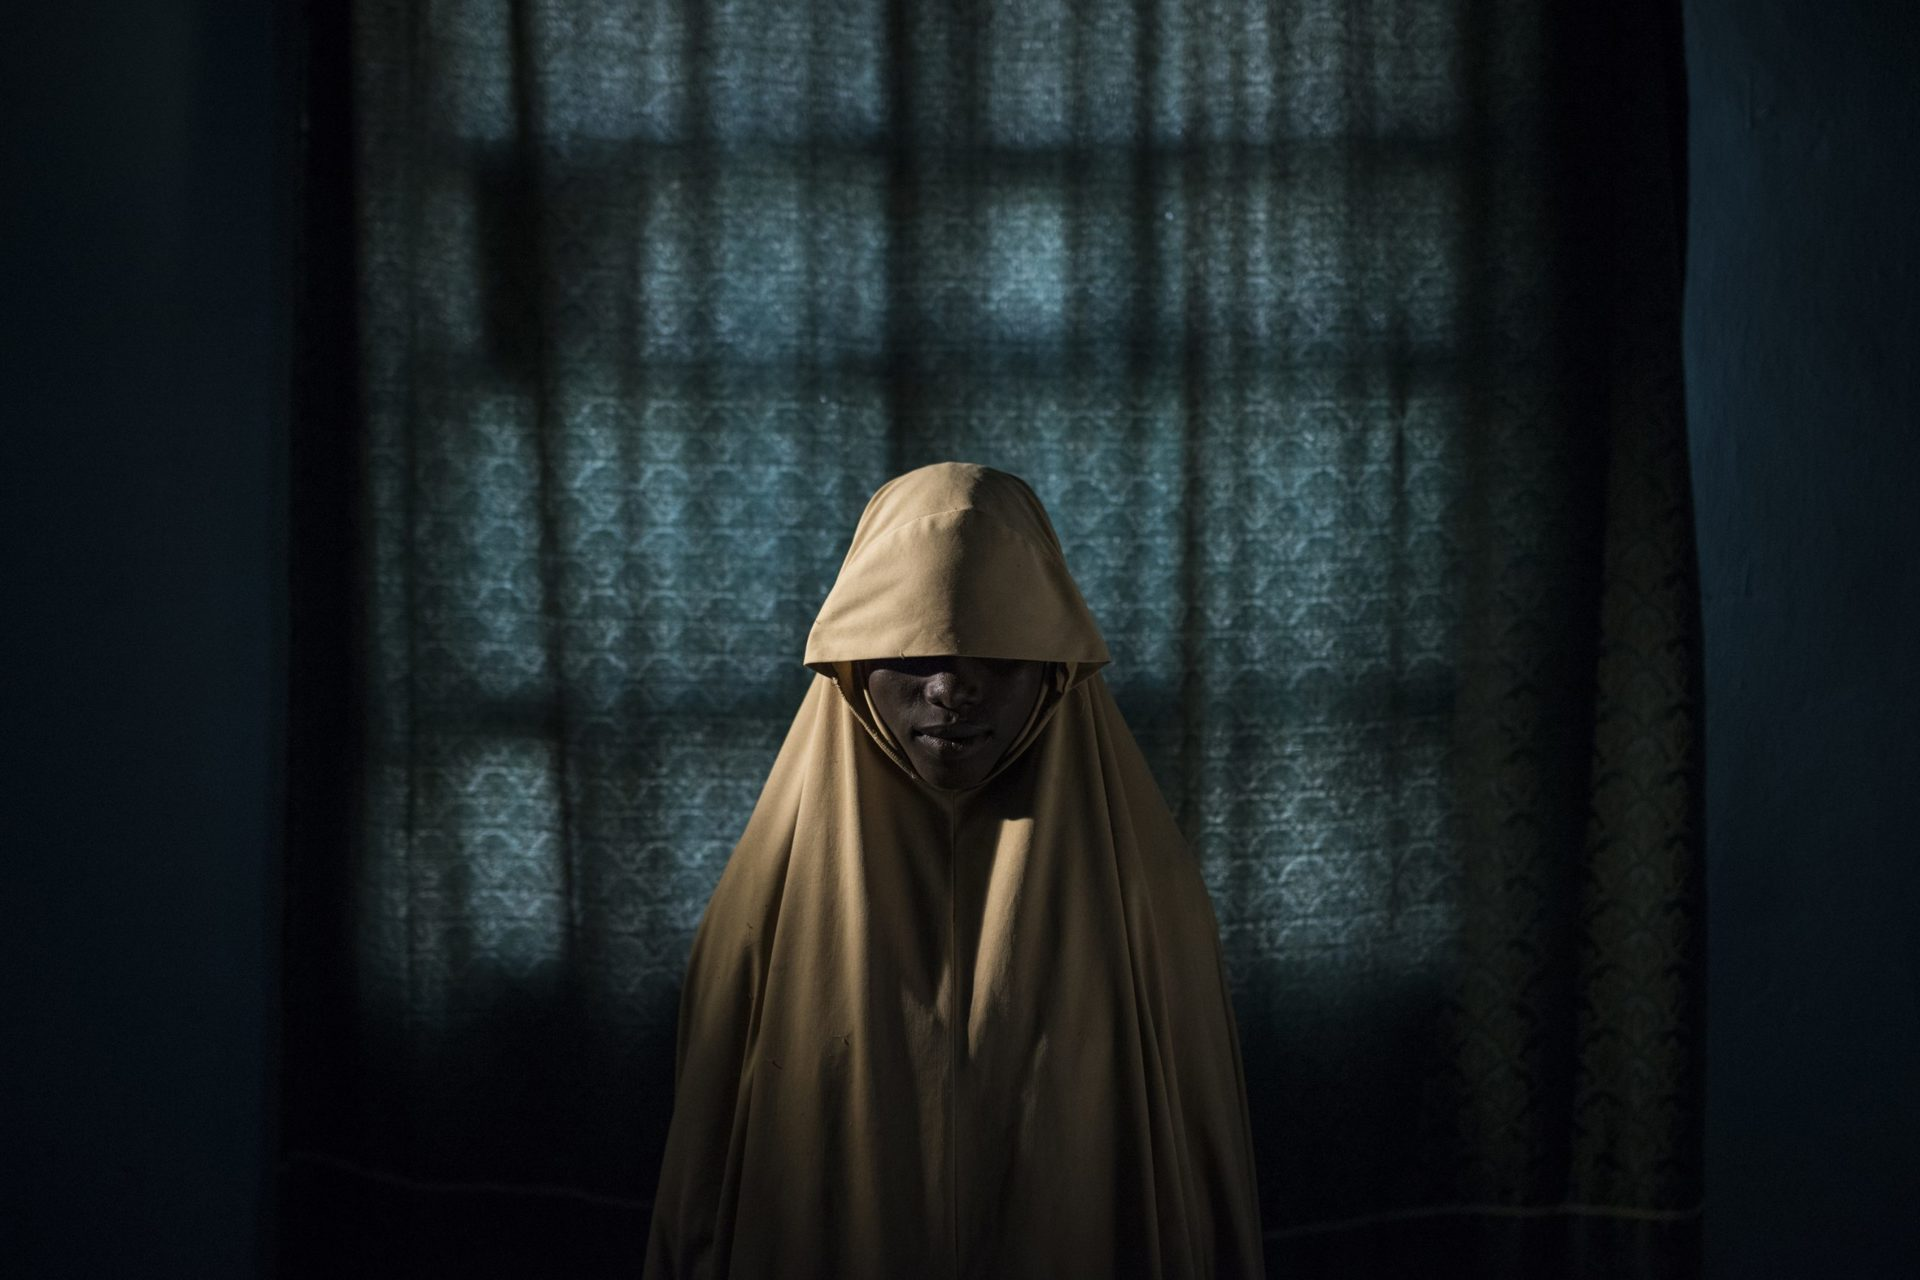 002 World Press Photo of the Year Nominee Adam Ferguson for The New York Times scaled - Milano Photofestival